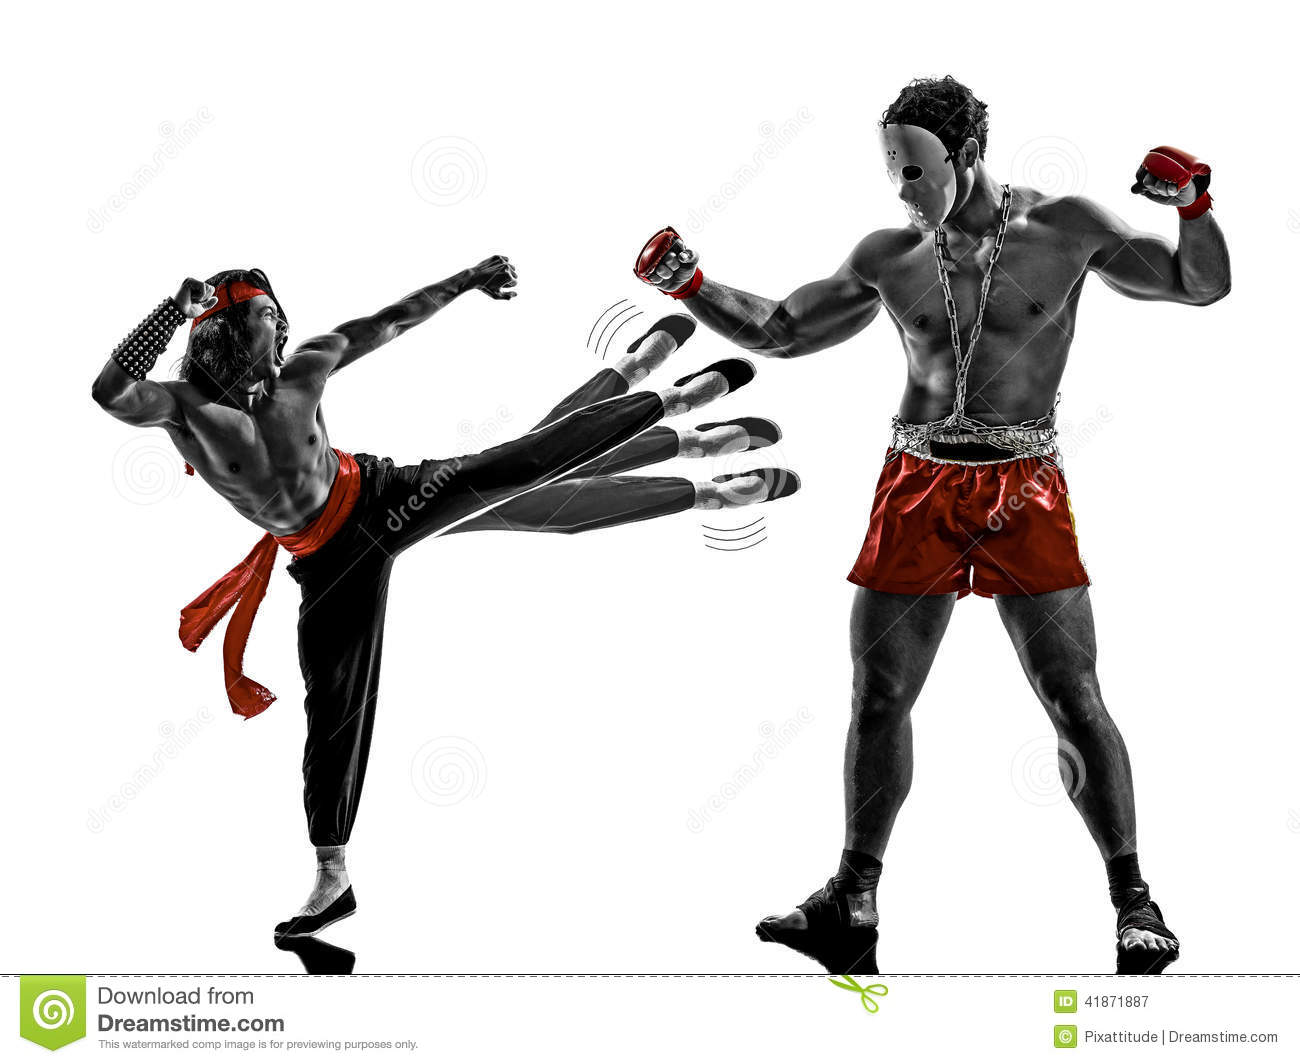 Two Manga Video Games Martial Arts Fighters Fighting Stock Image Image Of Shadows Backlit 41871887